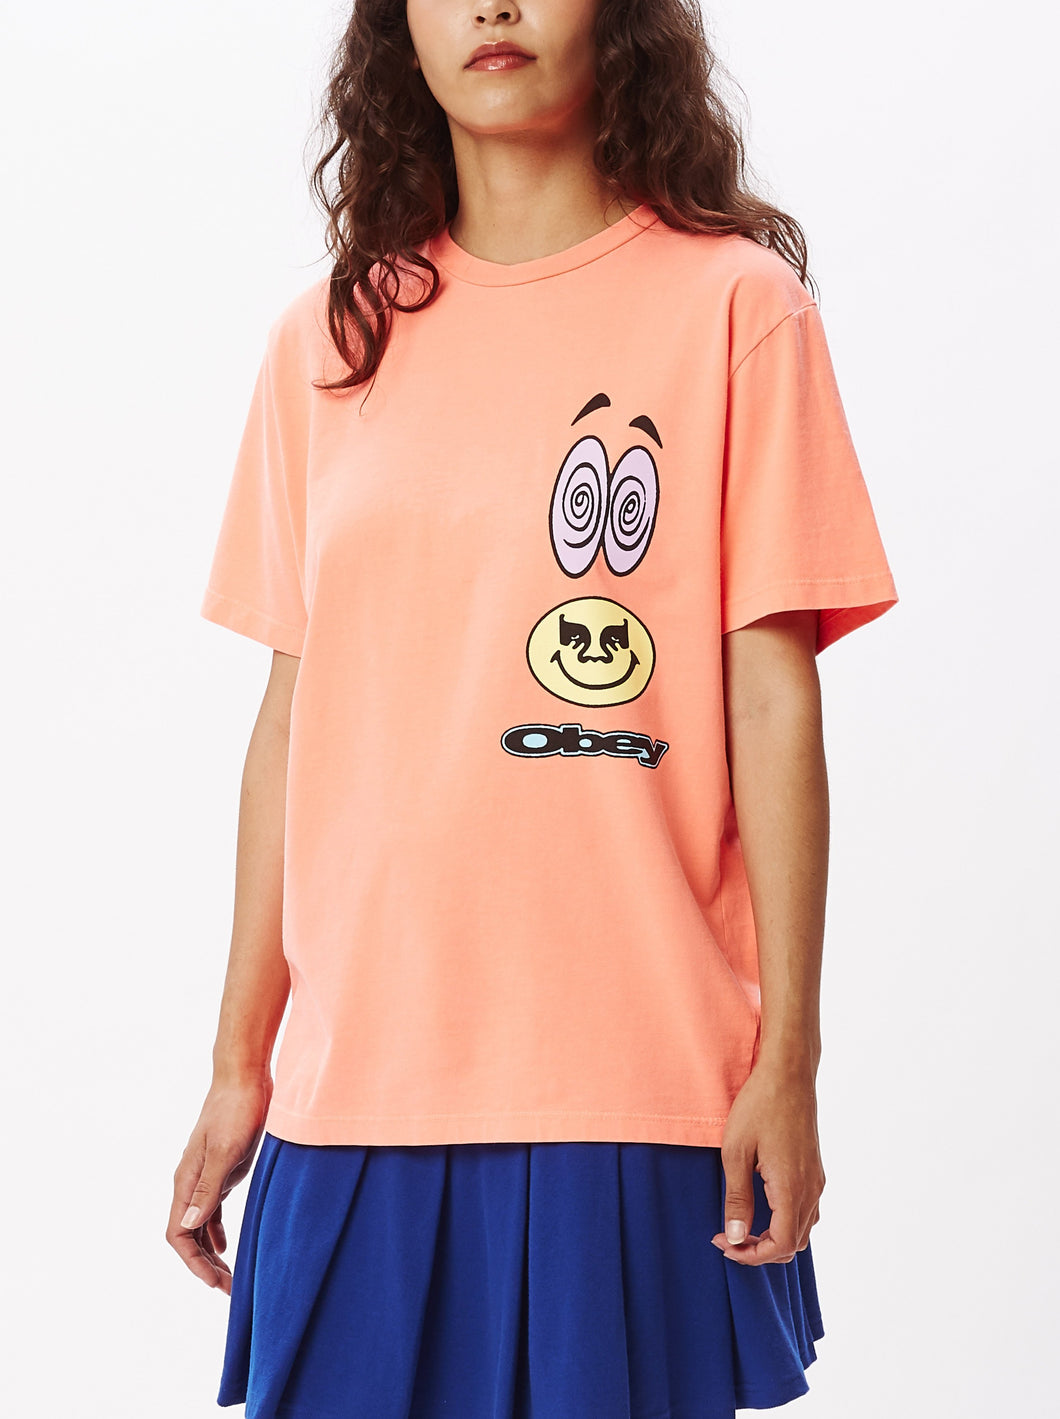 OBEY ACID CRASH T-SHIRT WOMENS NEON ORANGE